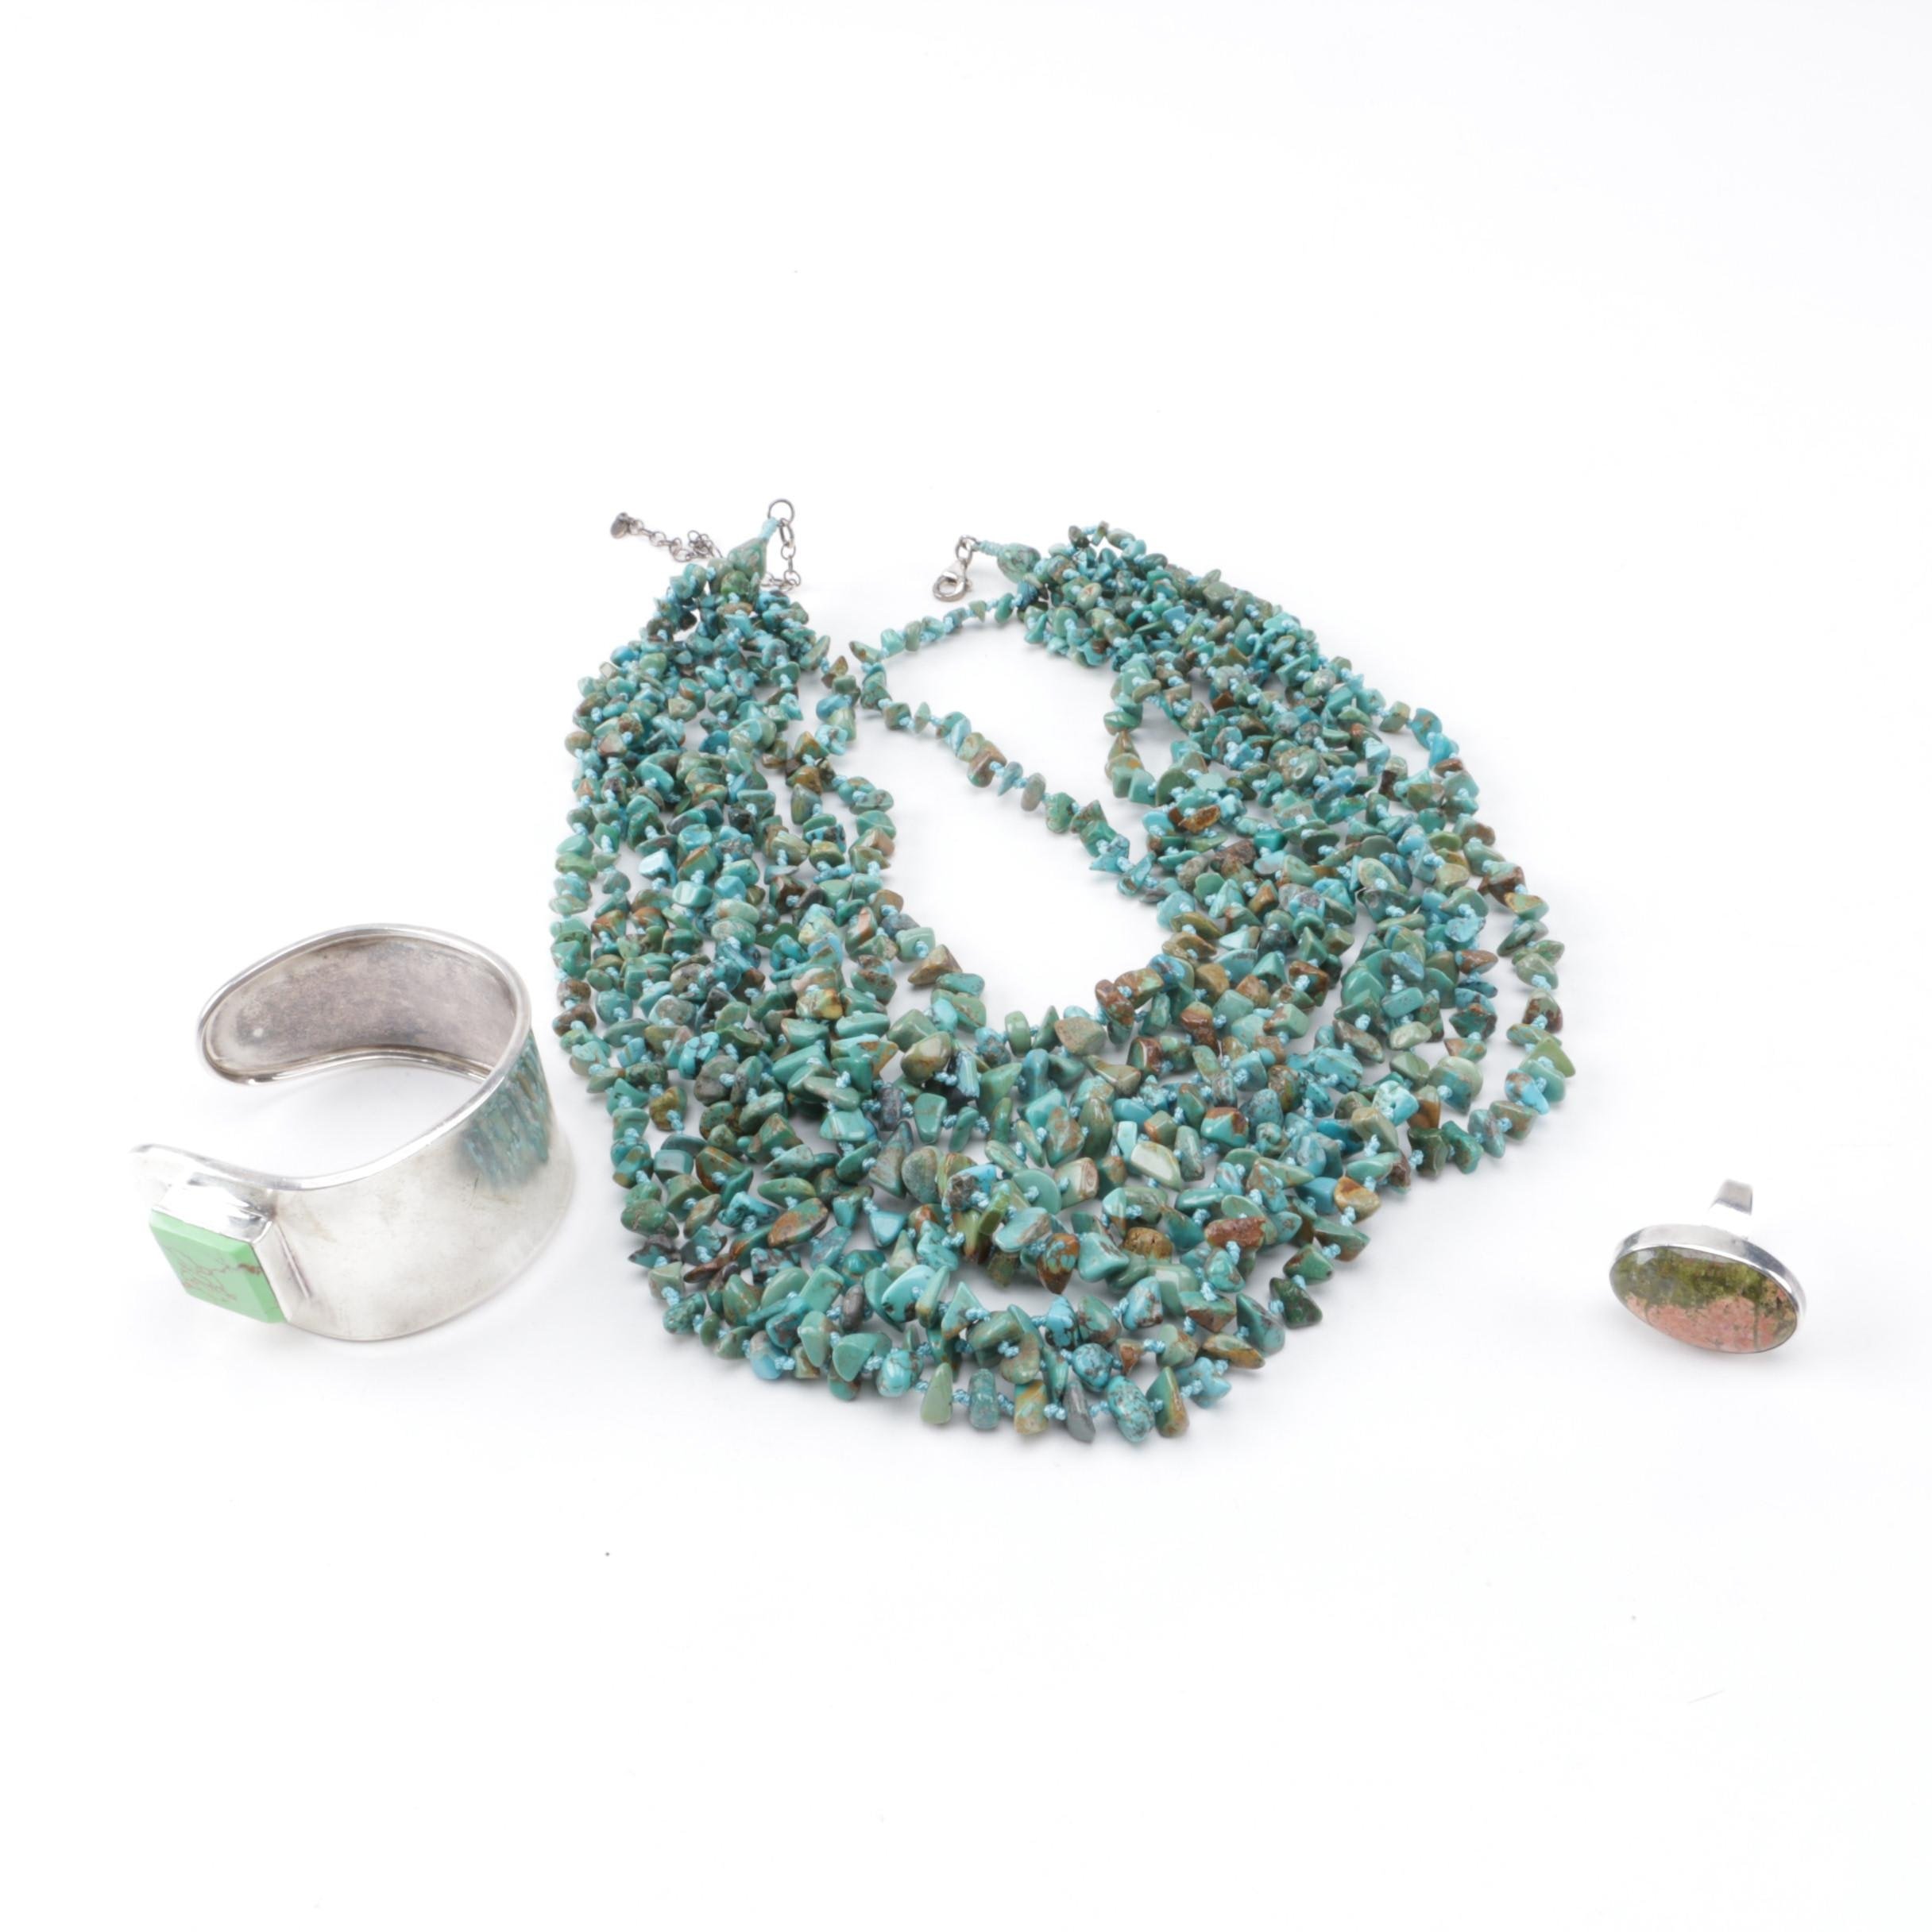 Selection of Sterling Silver Turquoise and Unakite Jewelry